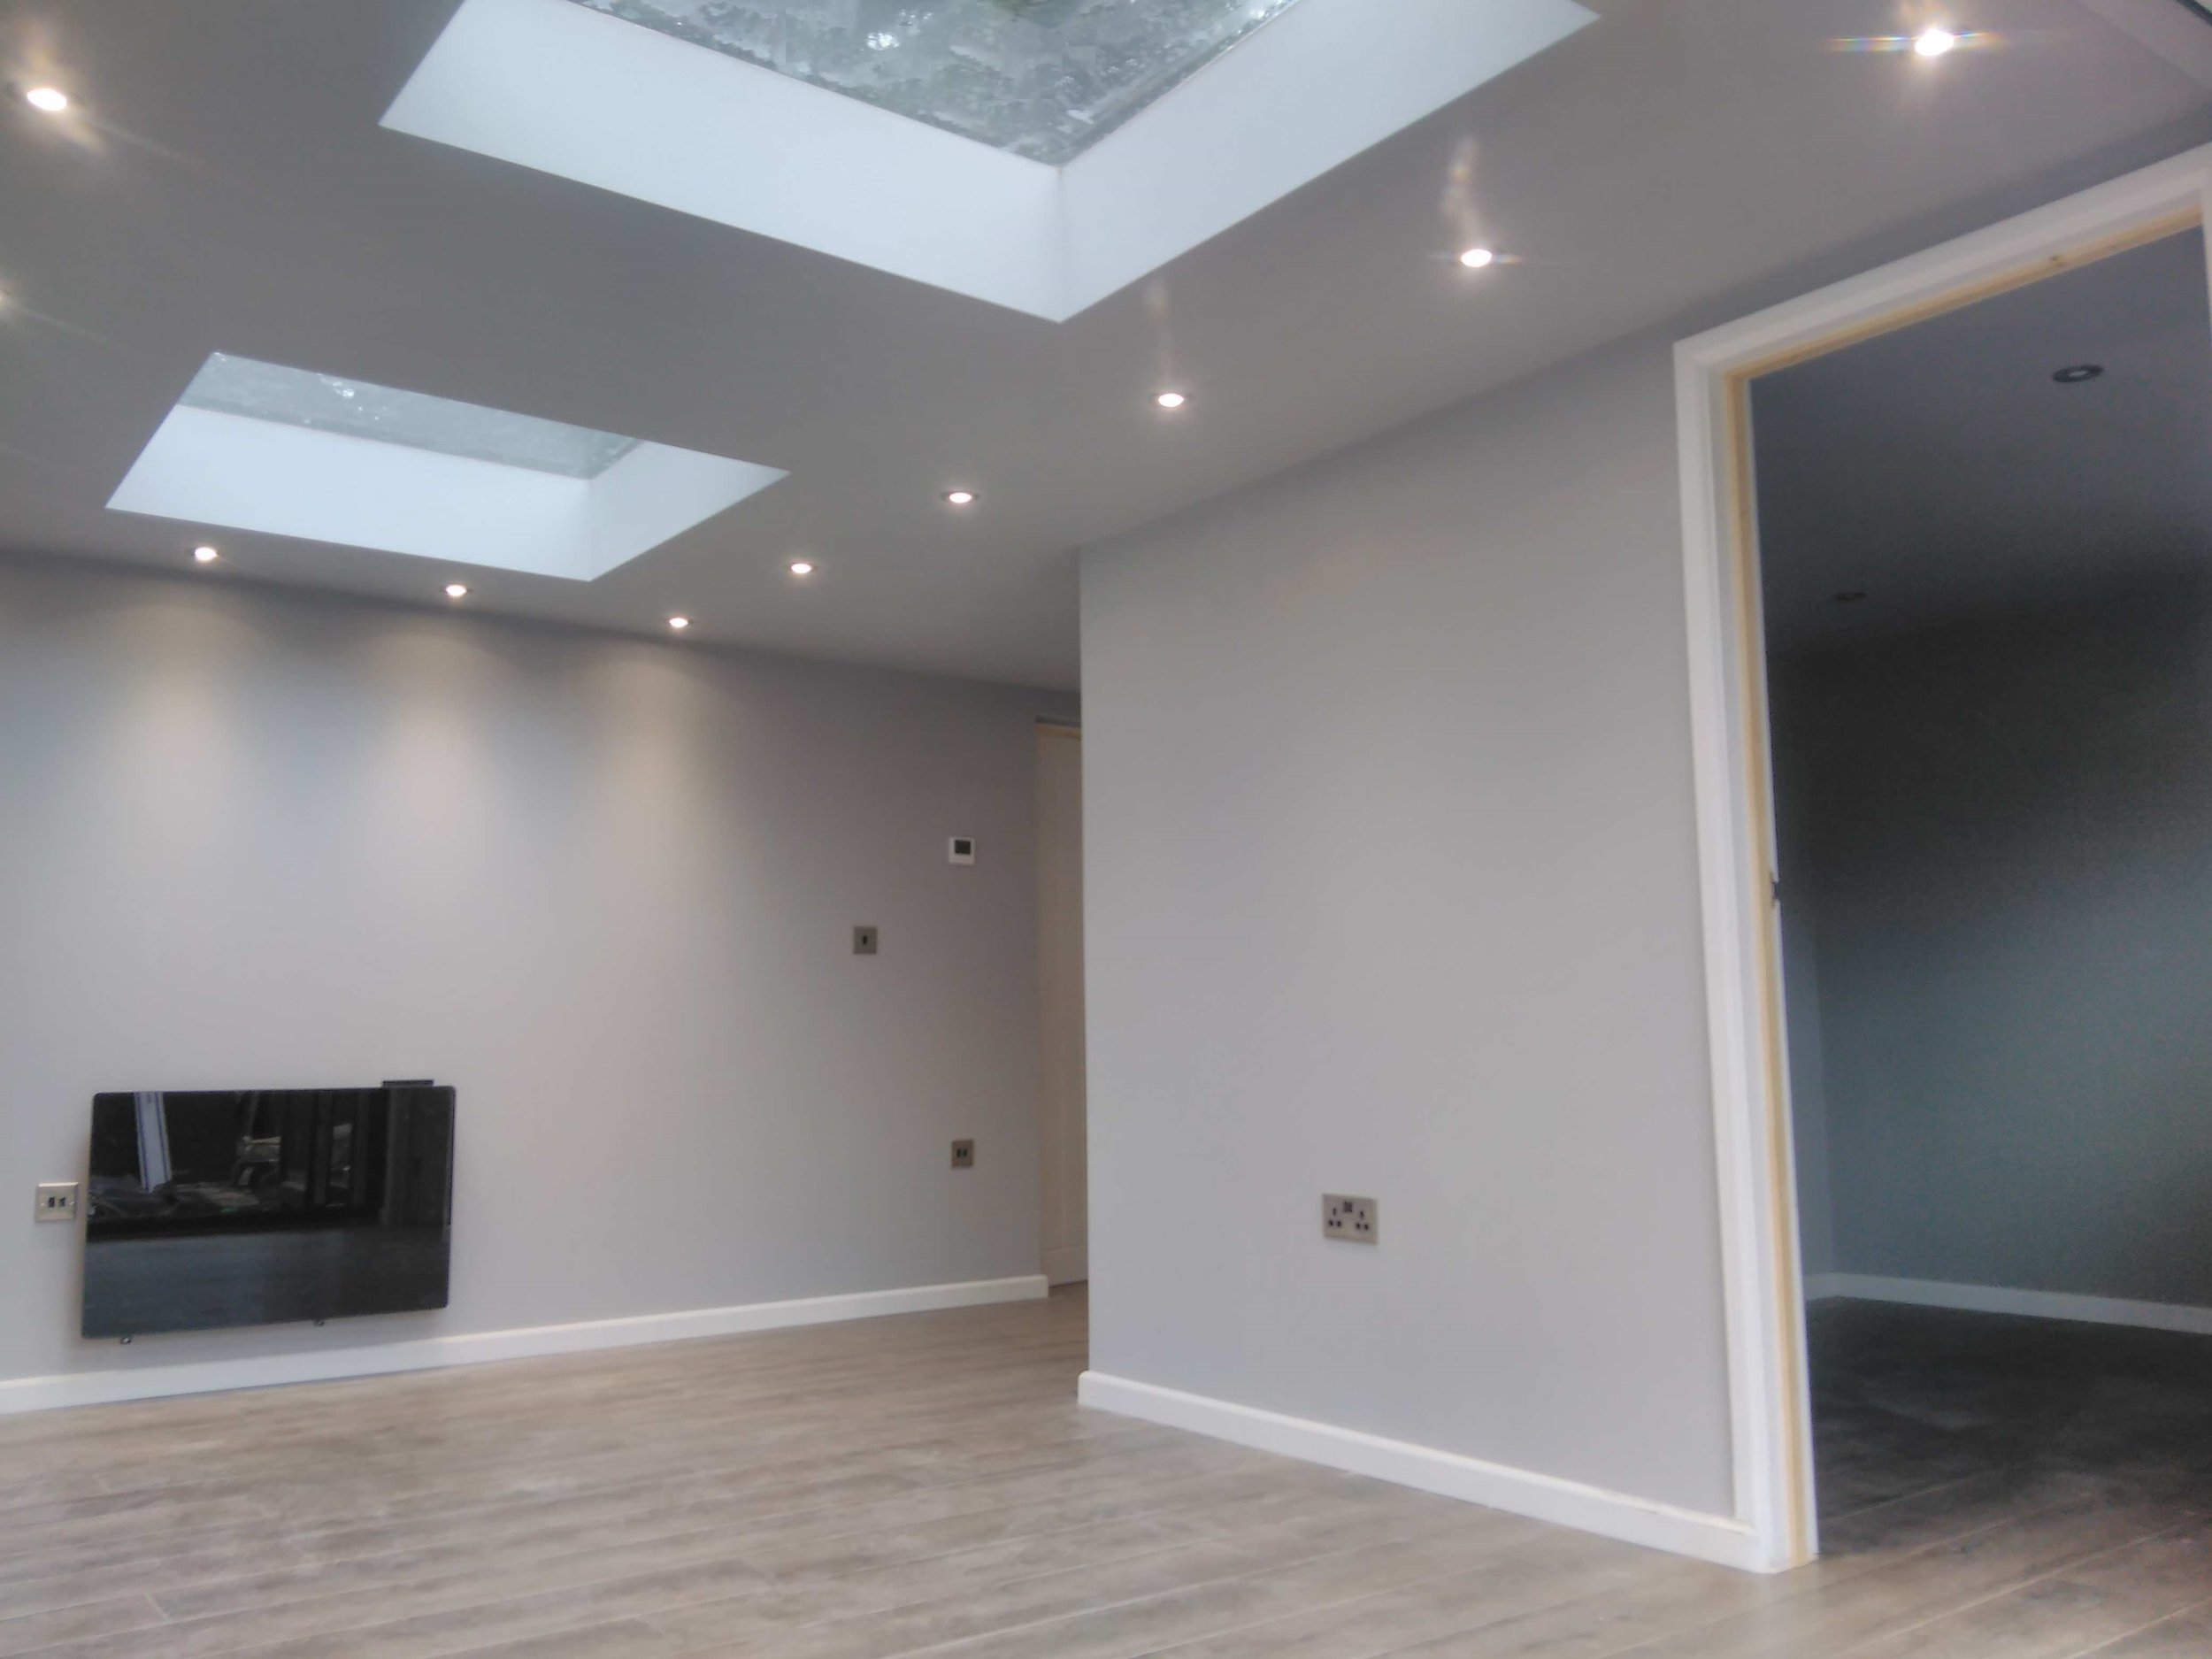 Full plasterboard & skim finish - Included as standard is a full plasterboard and skim finish to all the internal walls and ceilings.  No melamine!  This helps with acoustic performance as well as providing a quality residential feel.